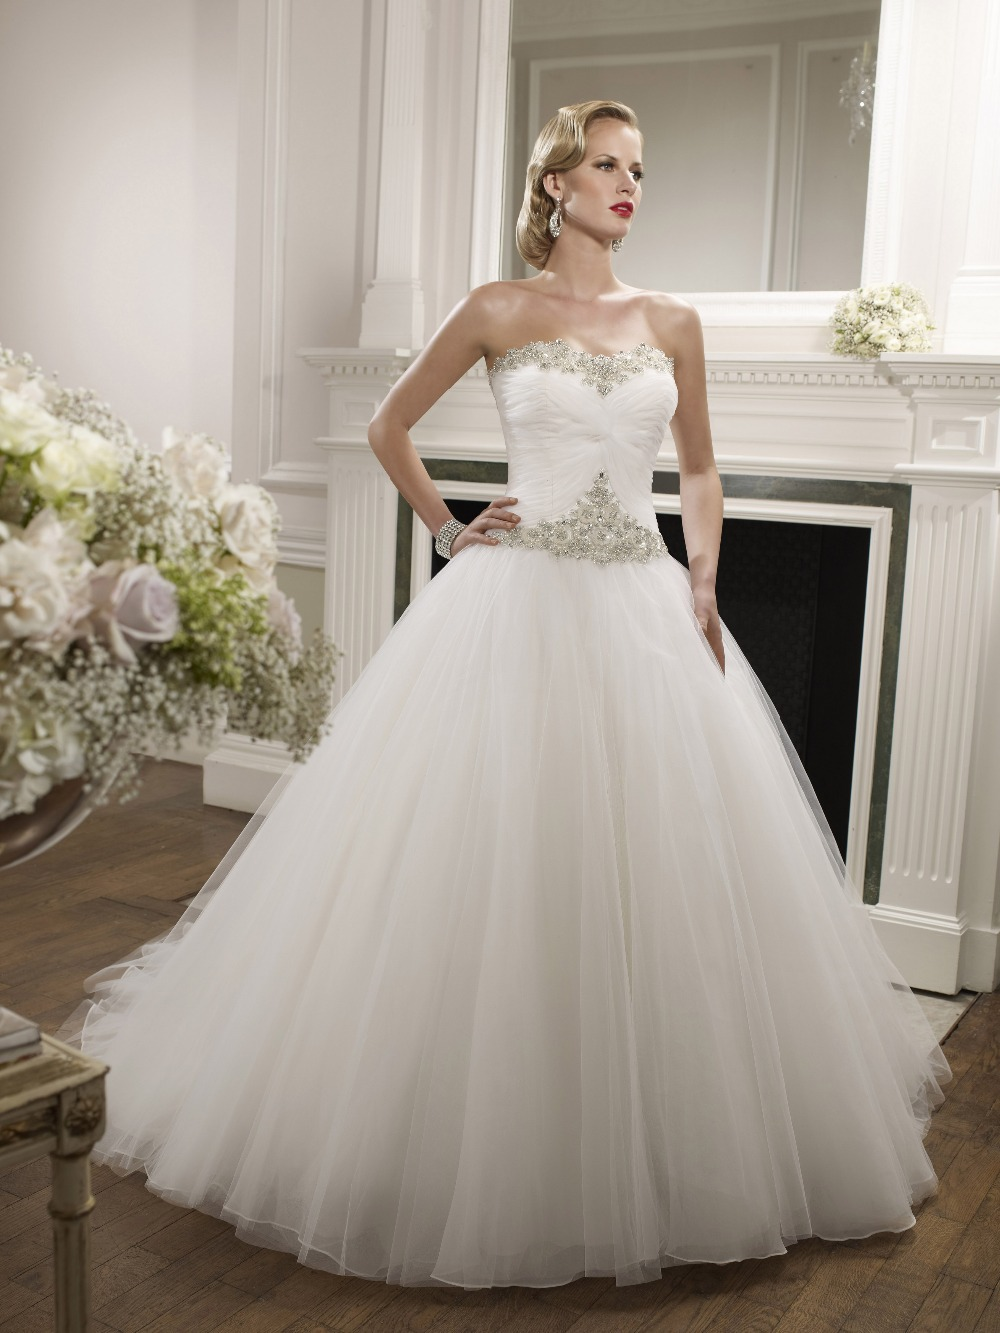 Strapless a line wedding dresses beaded tulle bridal gowns for Beaded a line wedding dress